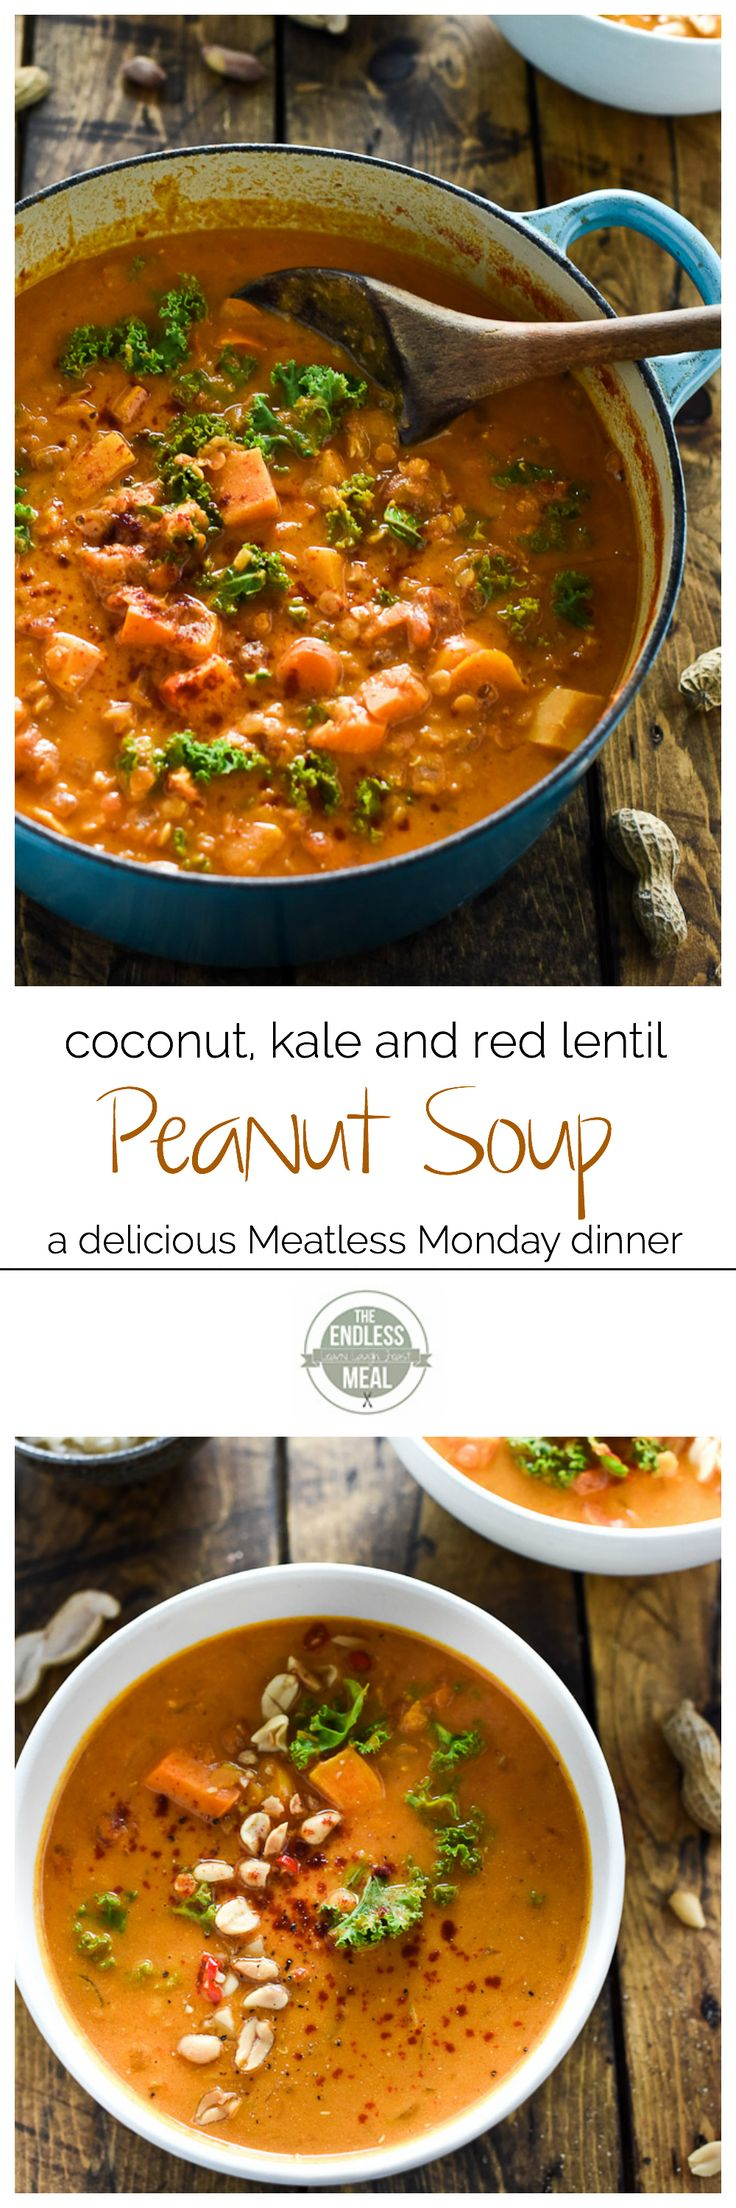 Blog post at The Endless Meal :   This is it, guys. This coconut red lentil peanut soup shot through all previous competitors and planted itself firmly in the[..]